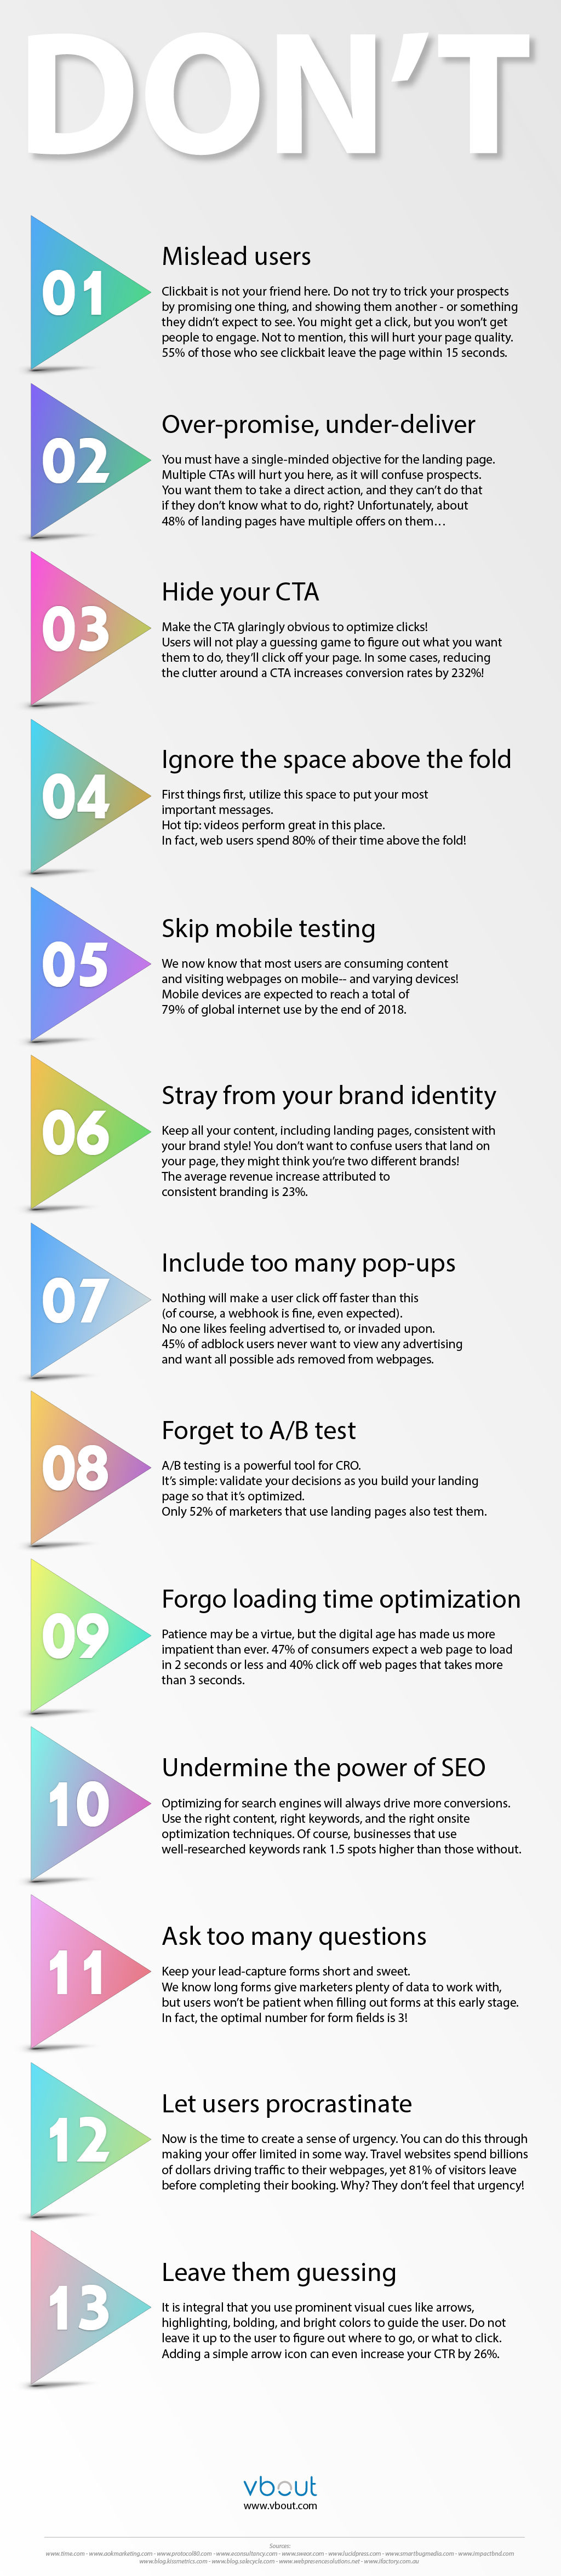 13-CRO-Mistakes-Infographic